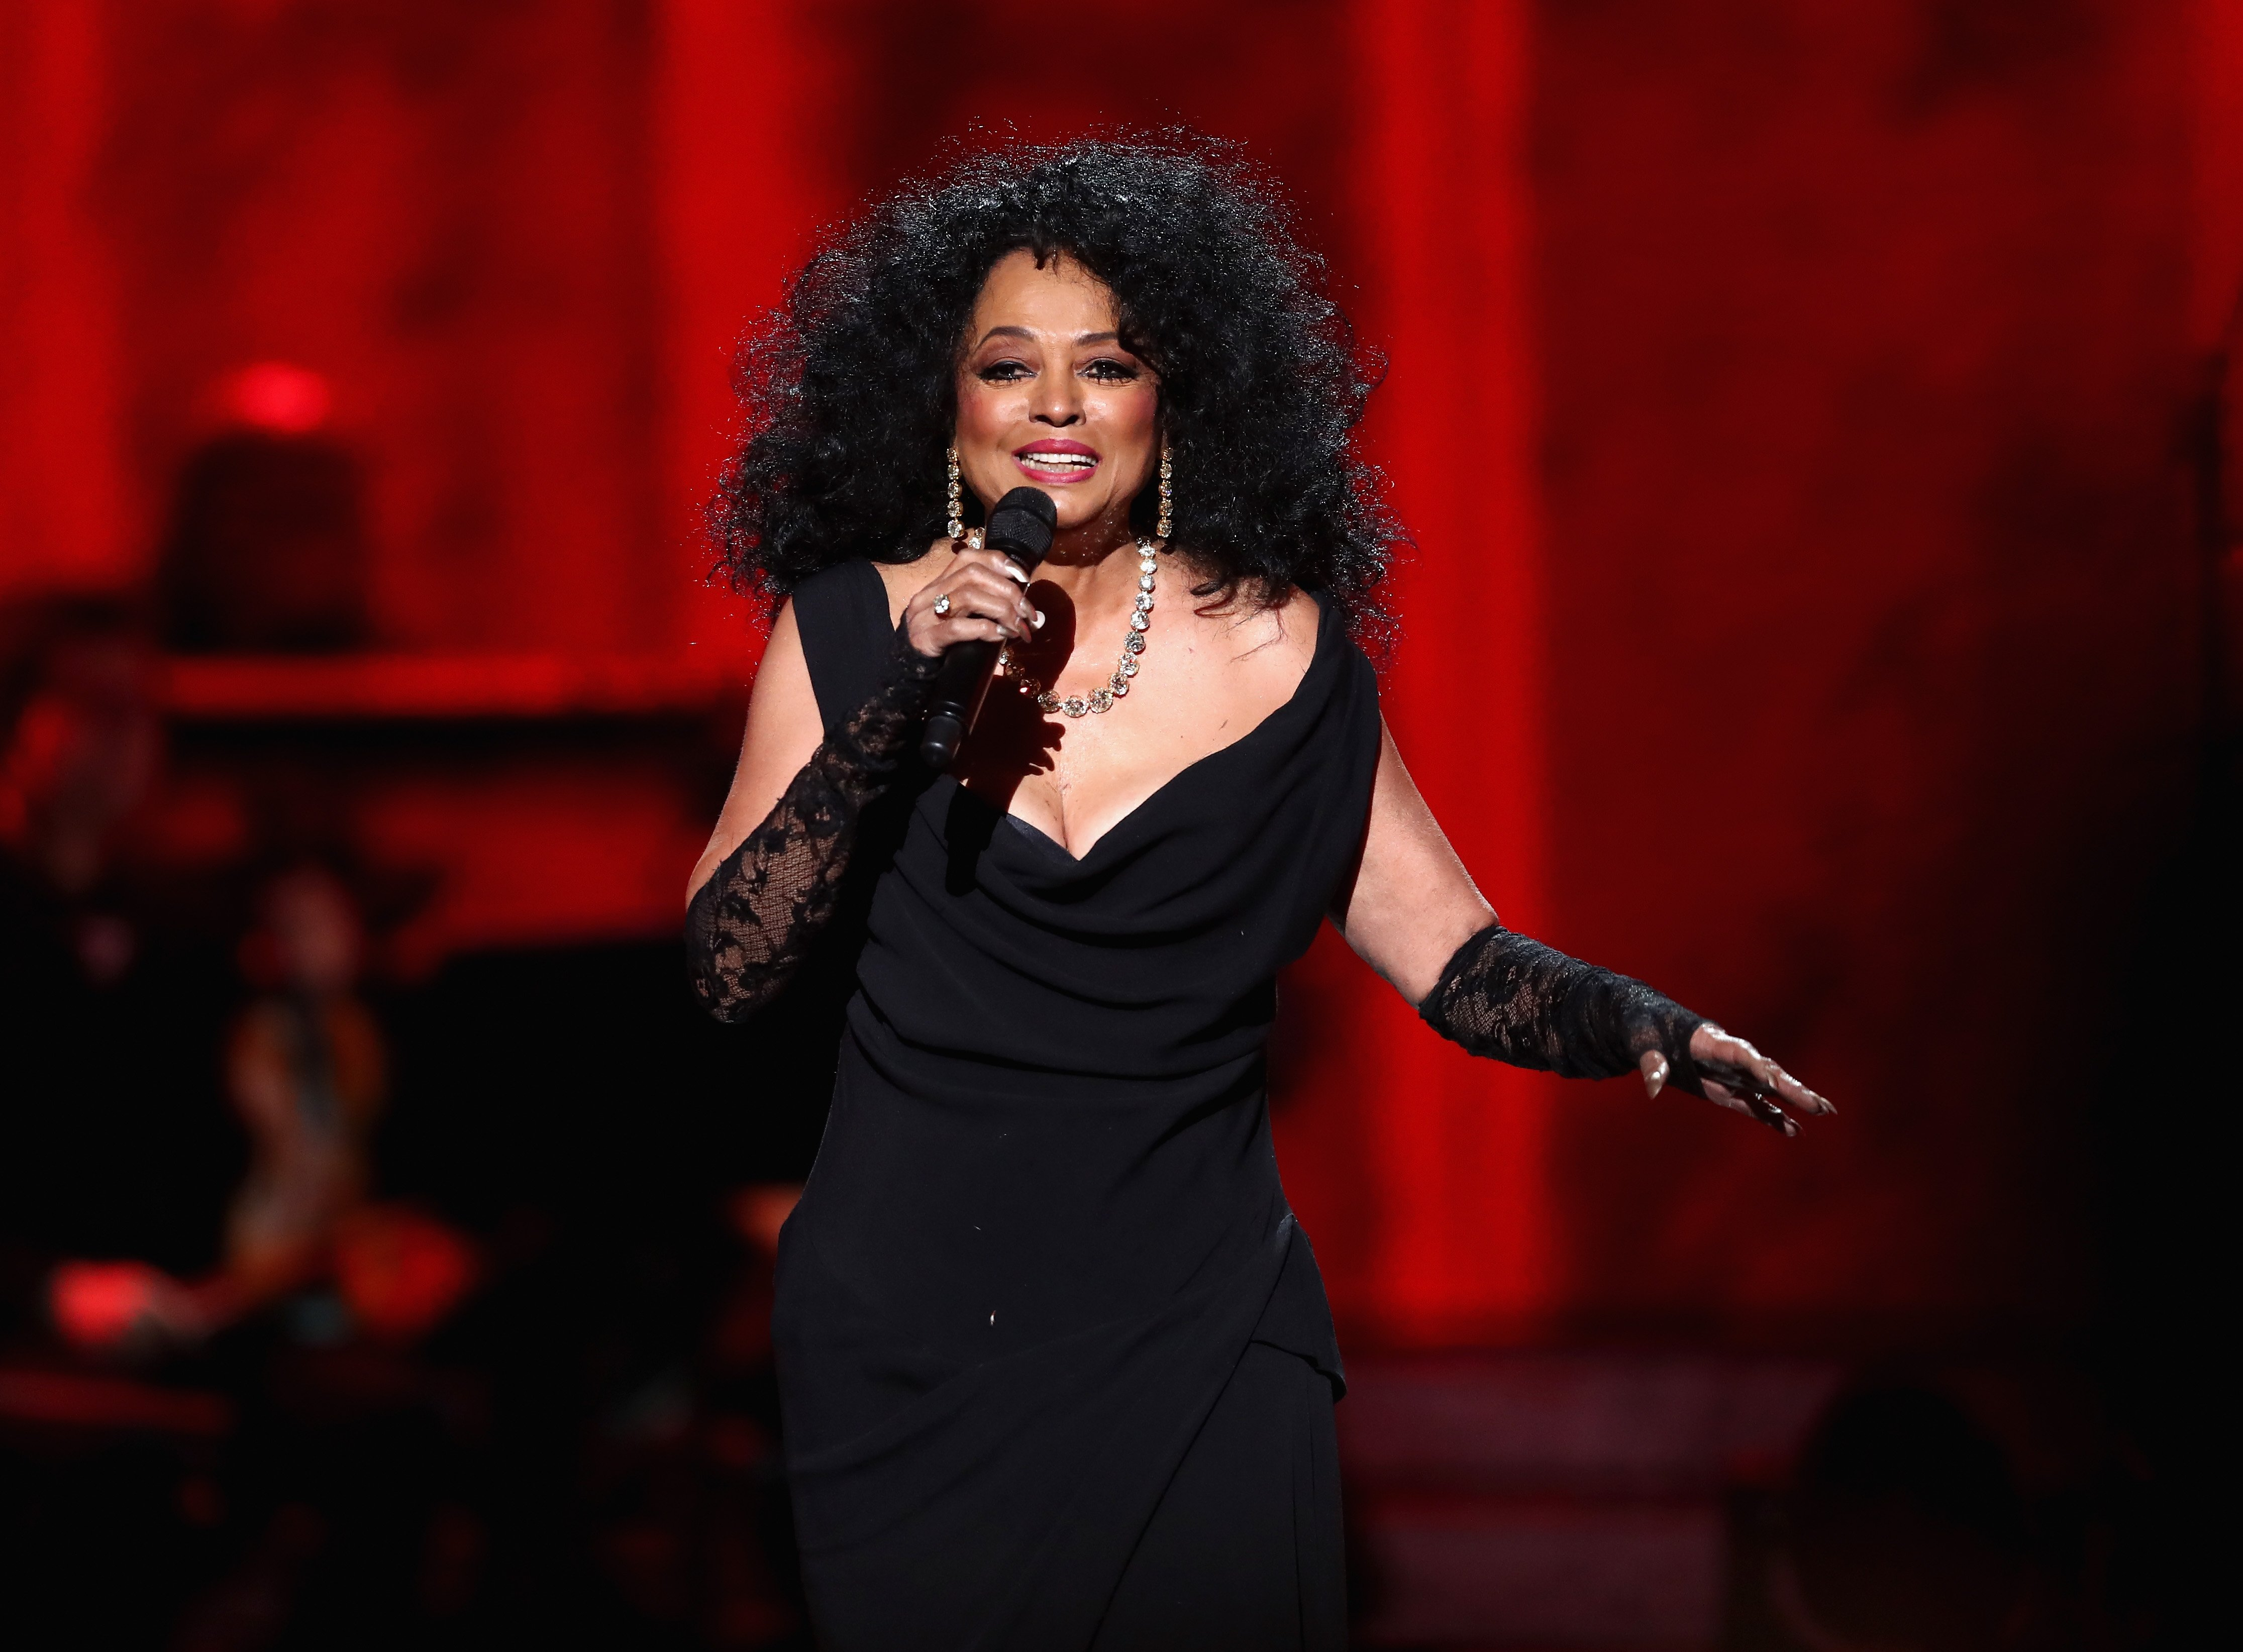 """Diana Ross performs onstage during the """"Motown 60: A Grammy Celebration"""" at Microsoft Theater on February 12, 2019.   Photo: Getty Images"""